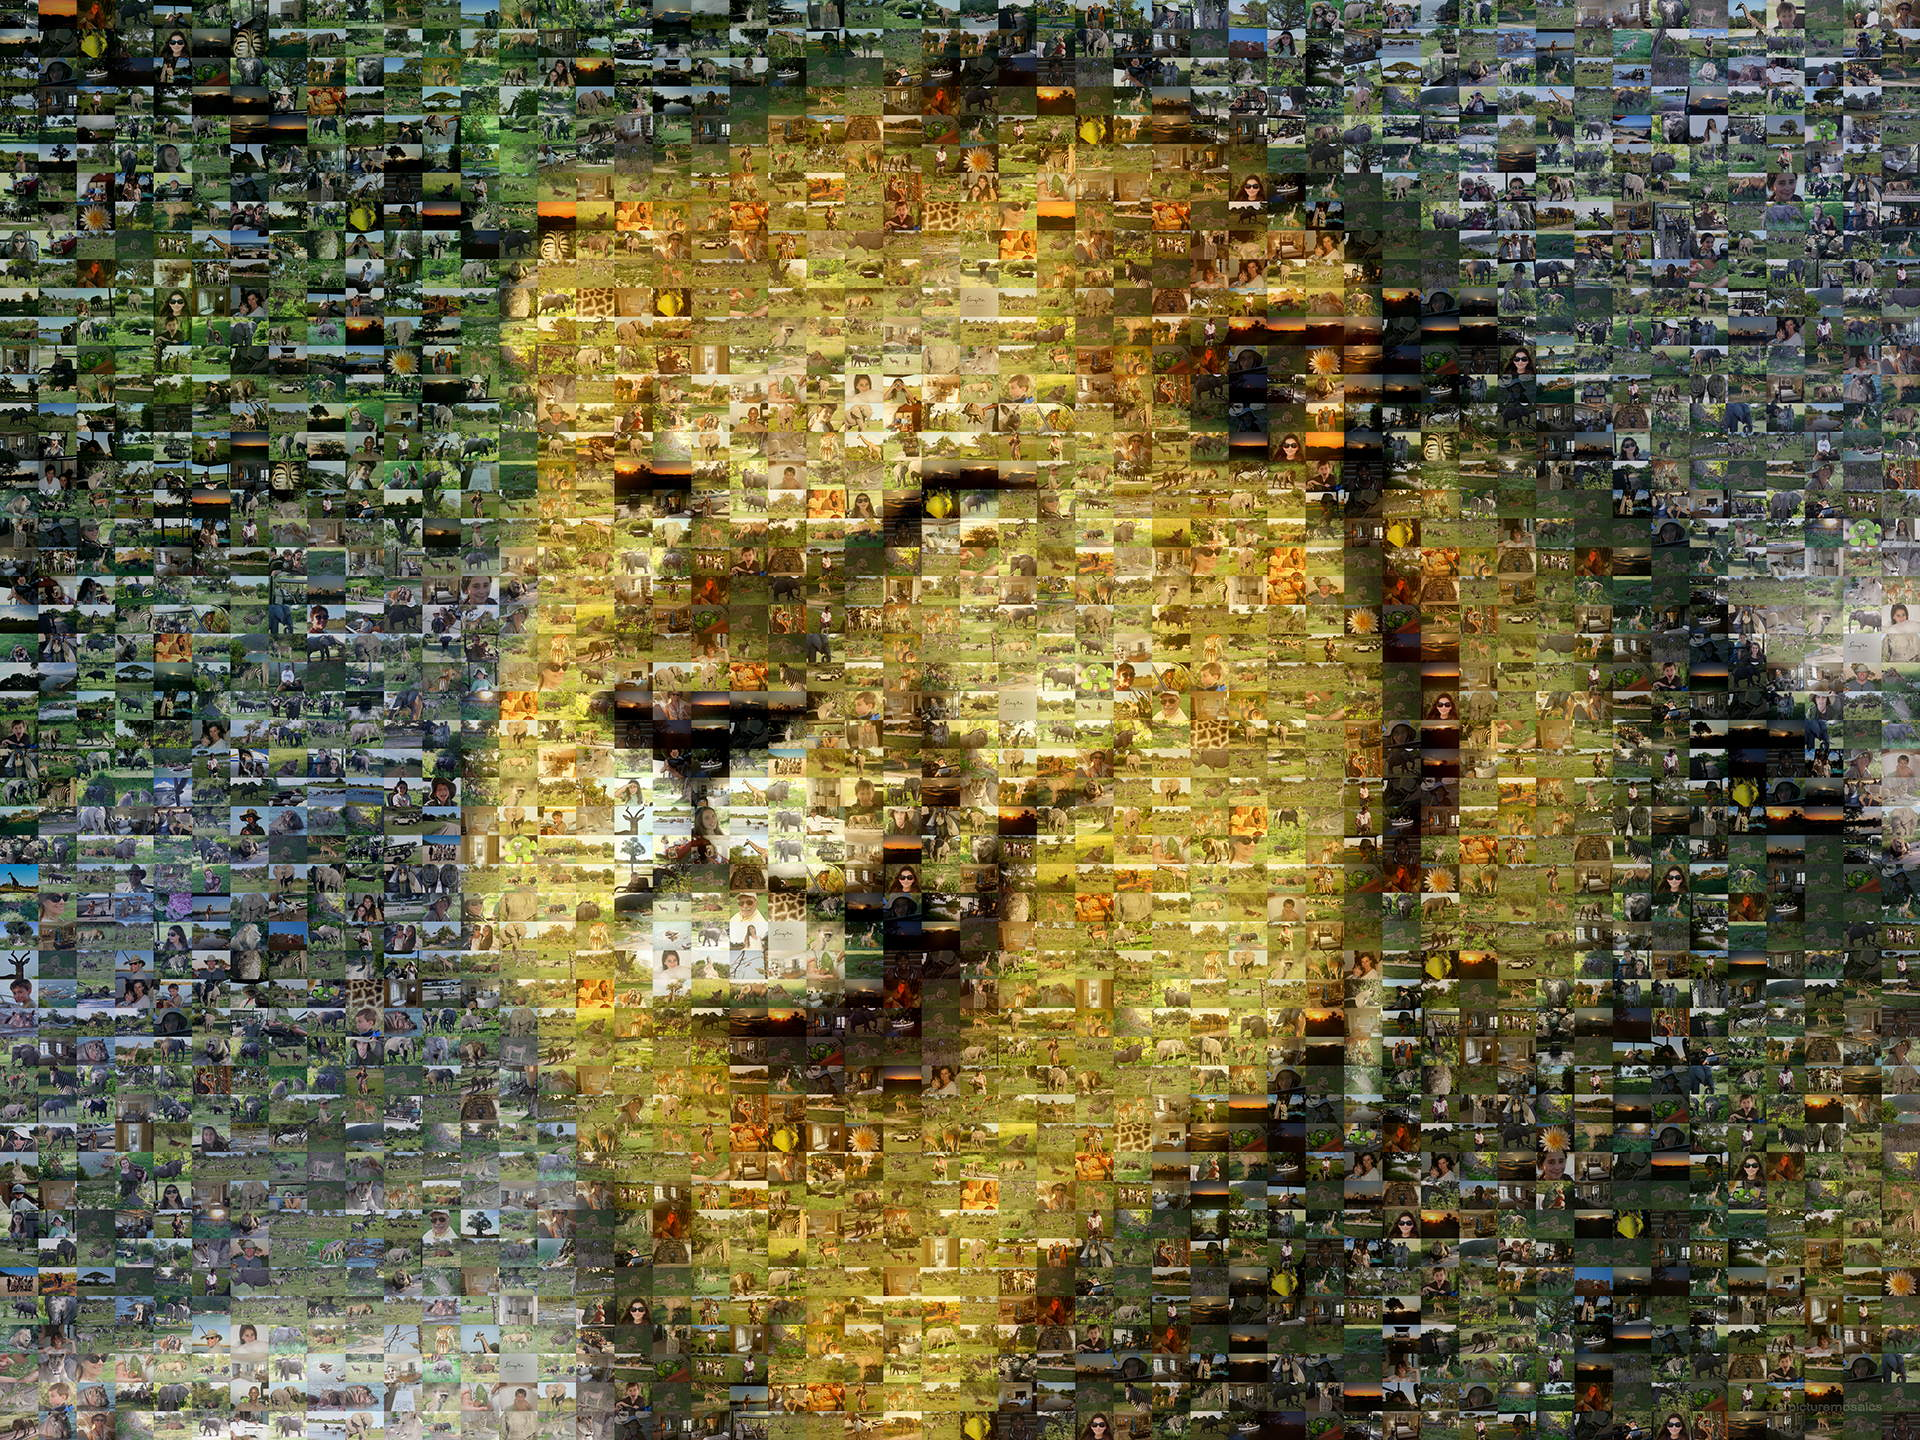 photo mosaic created using 705 photos of a family vacation